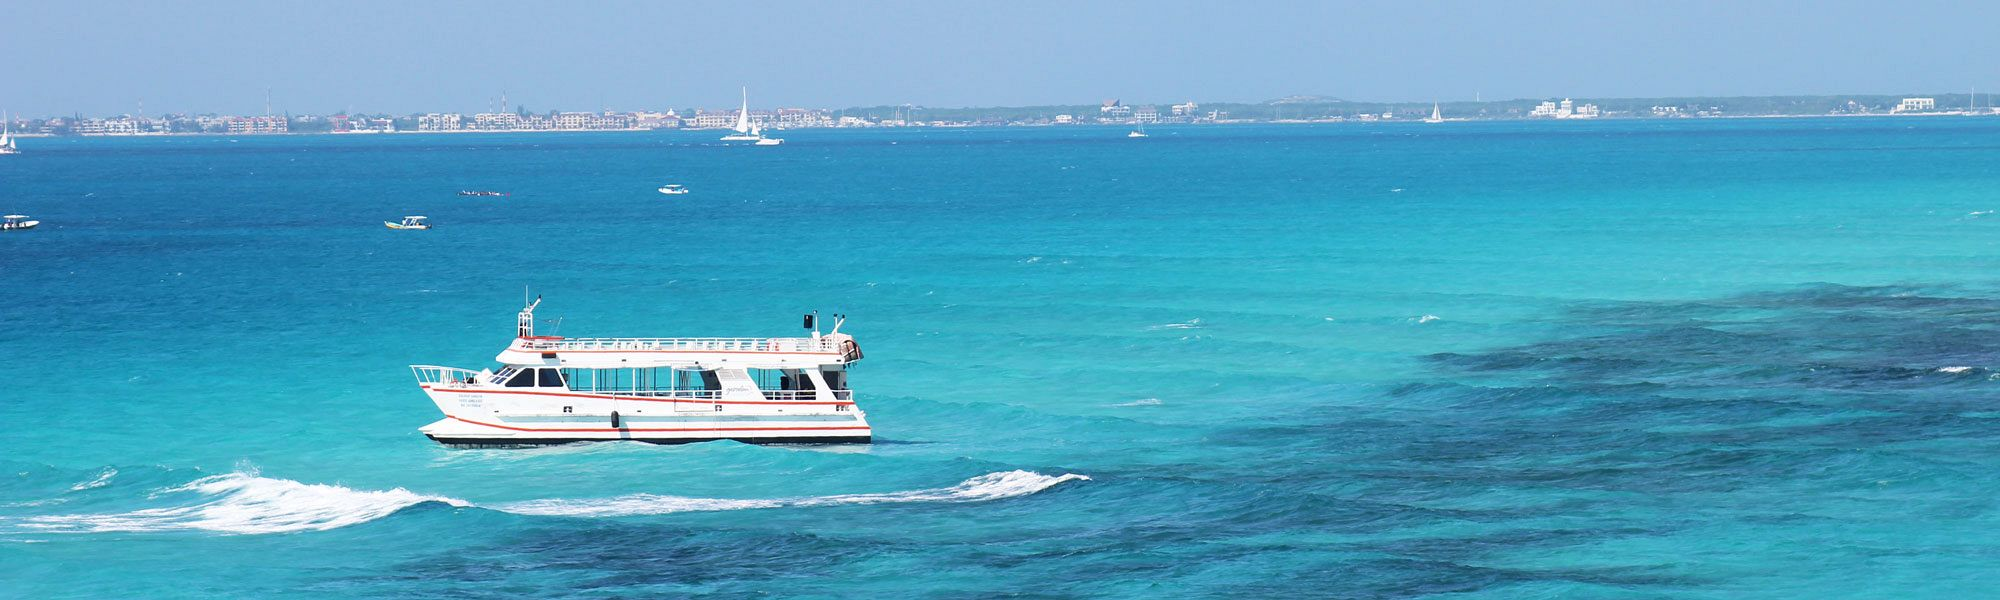 Getting to Isla Mujeres